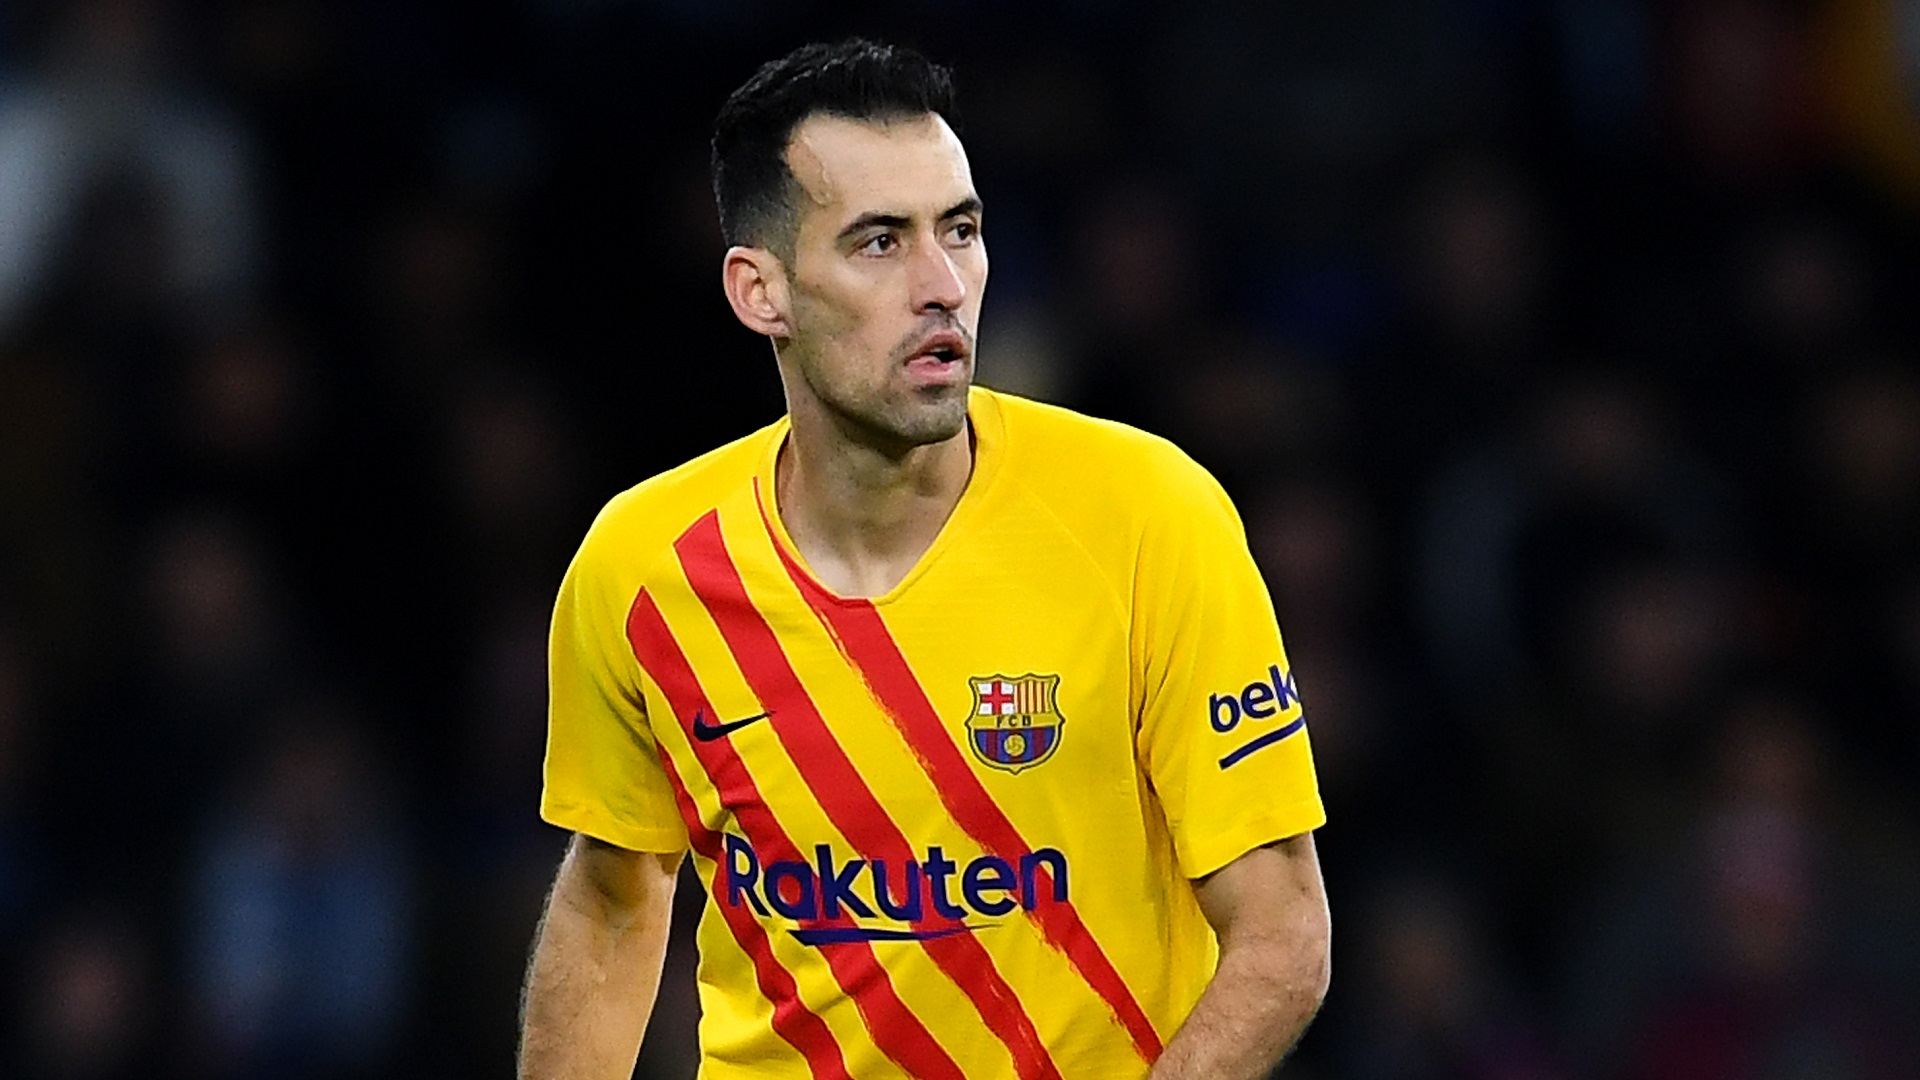 Busquets could talk about Barcelona drama for 'five or six hours'